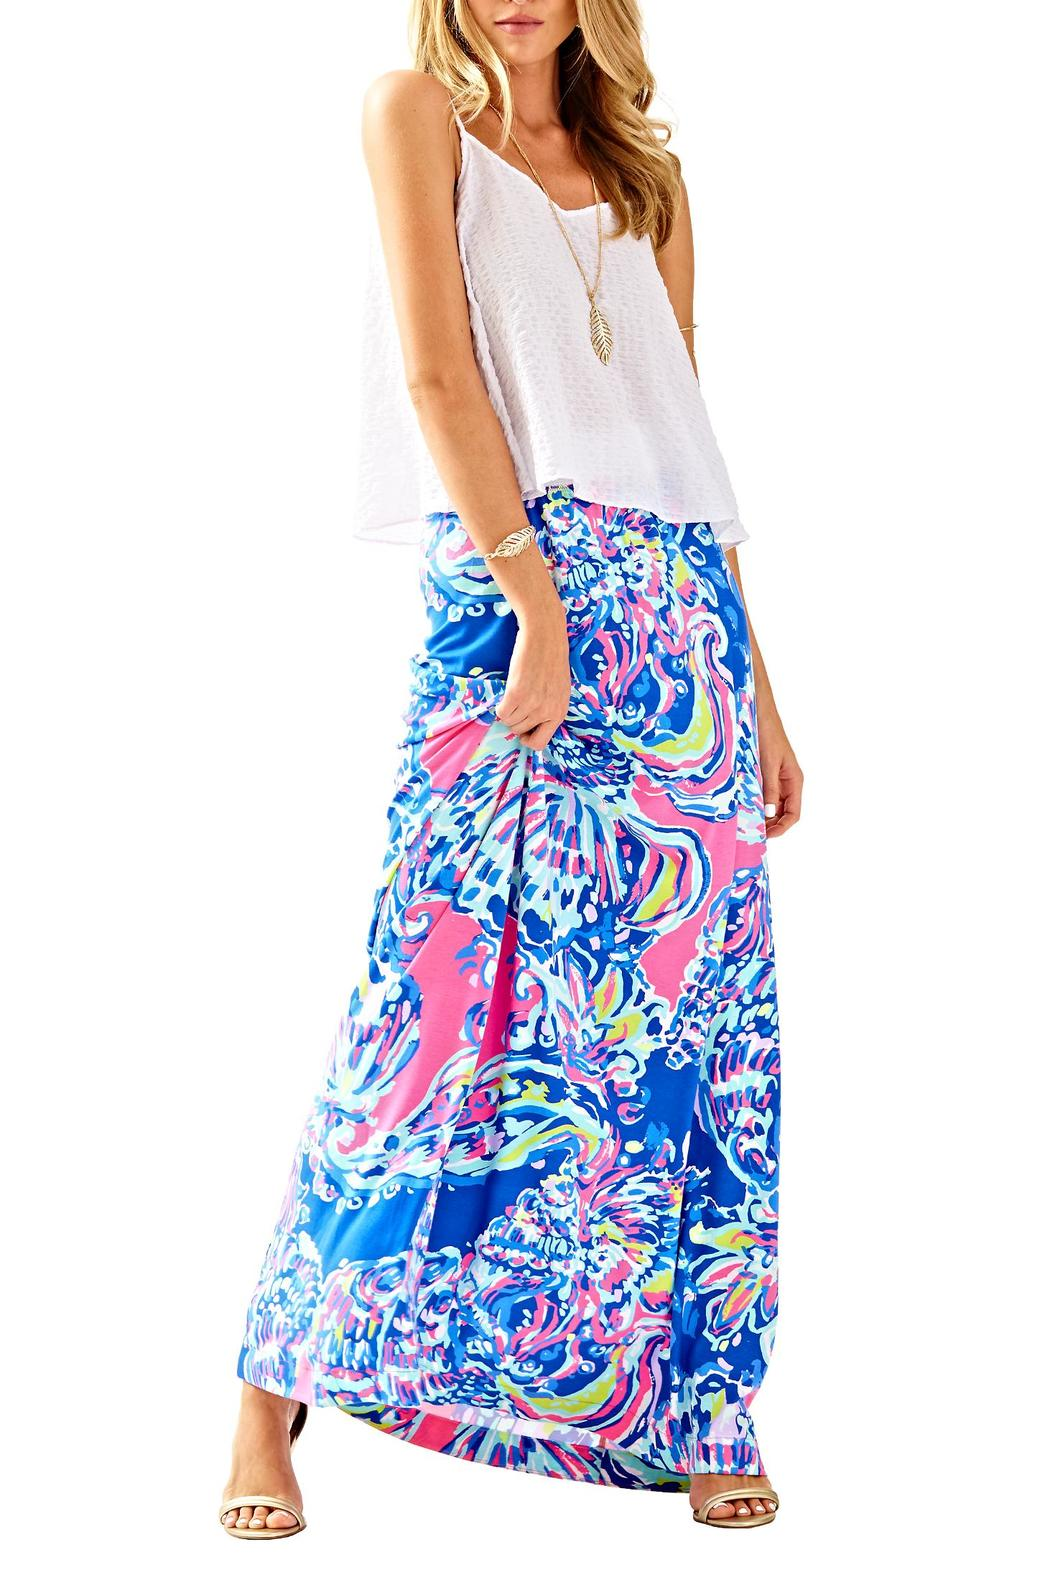 lilly pulitzer nola maxi skirt from sandestin golf